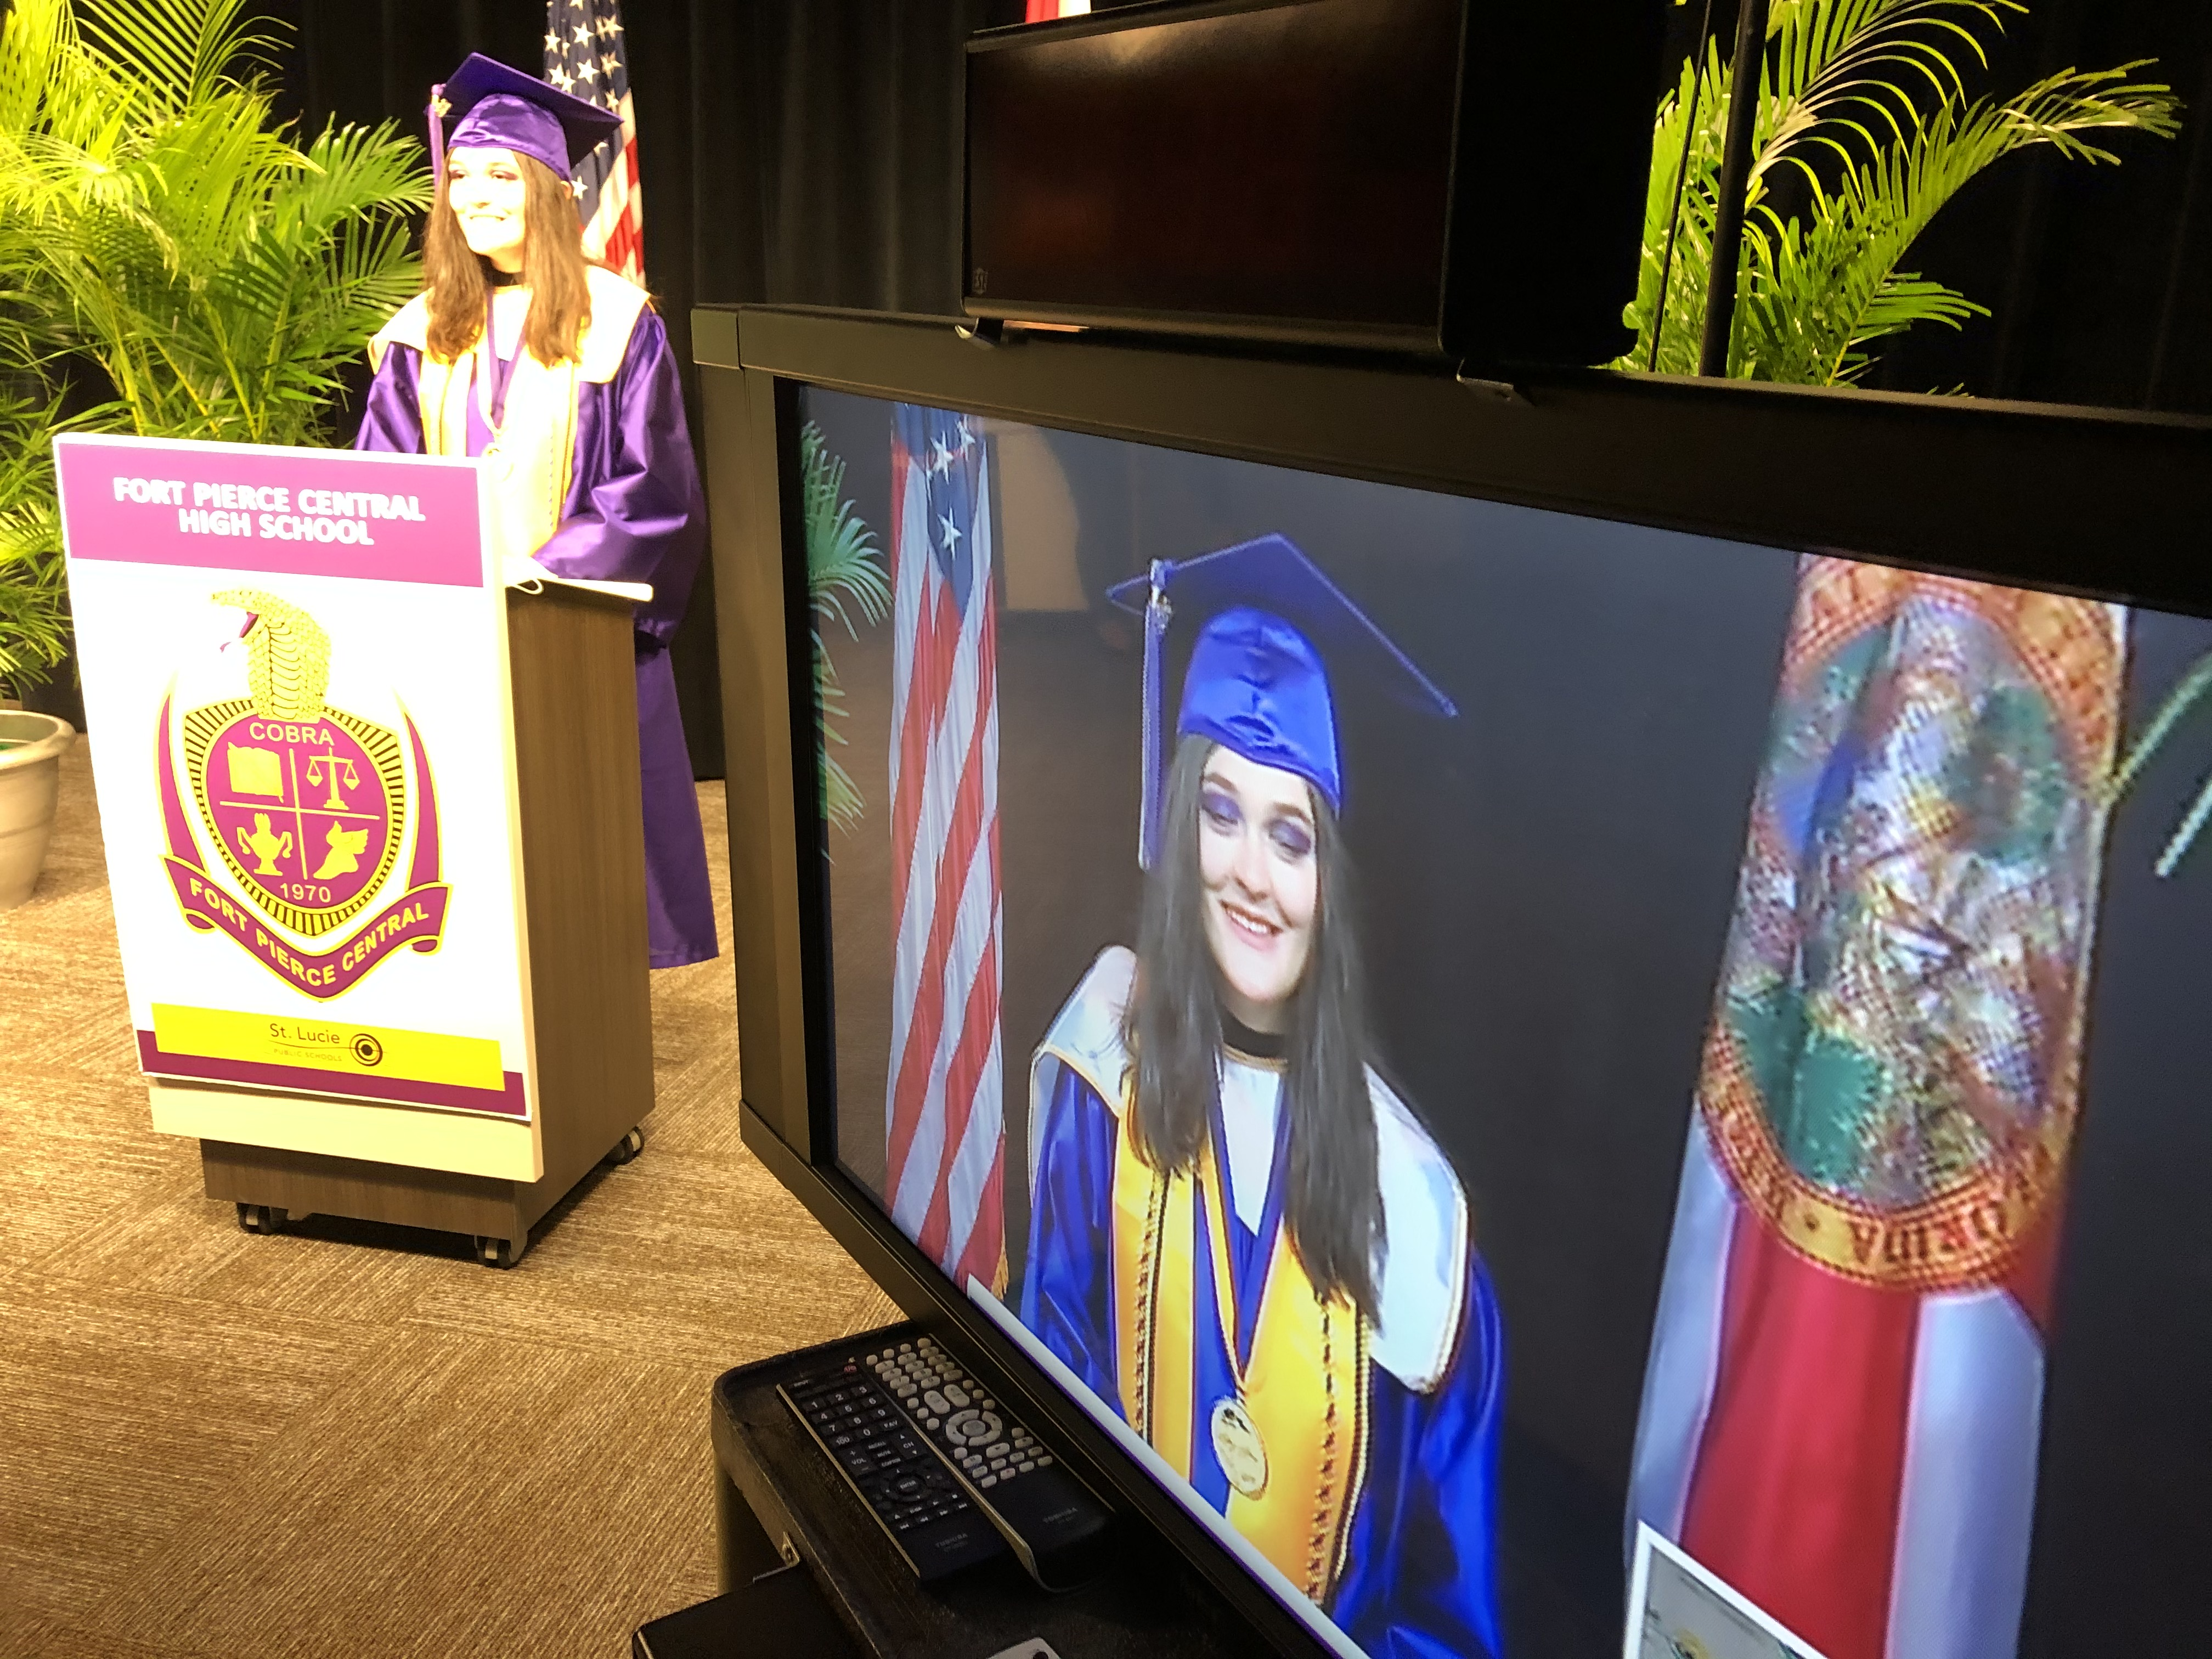 A preview of what Fort Pierce Central High School's virtual graduation will look like.